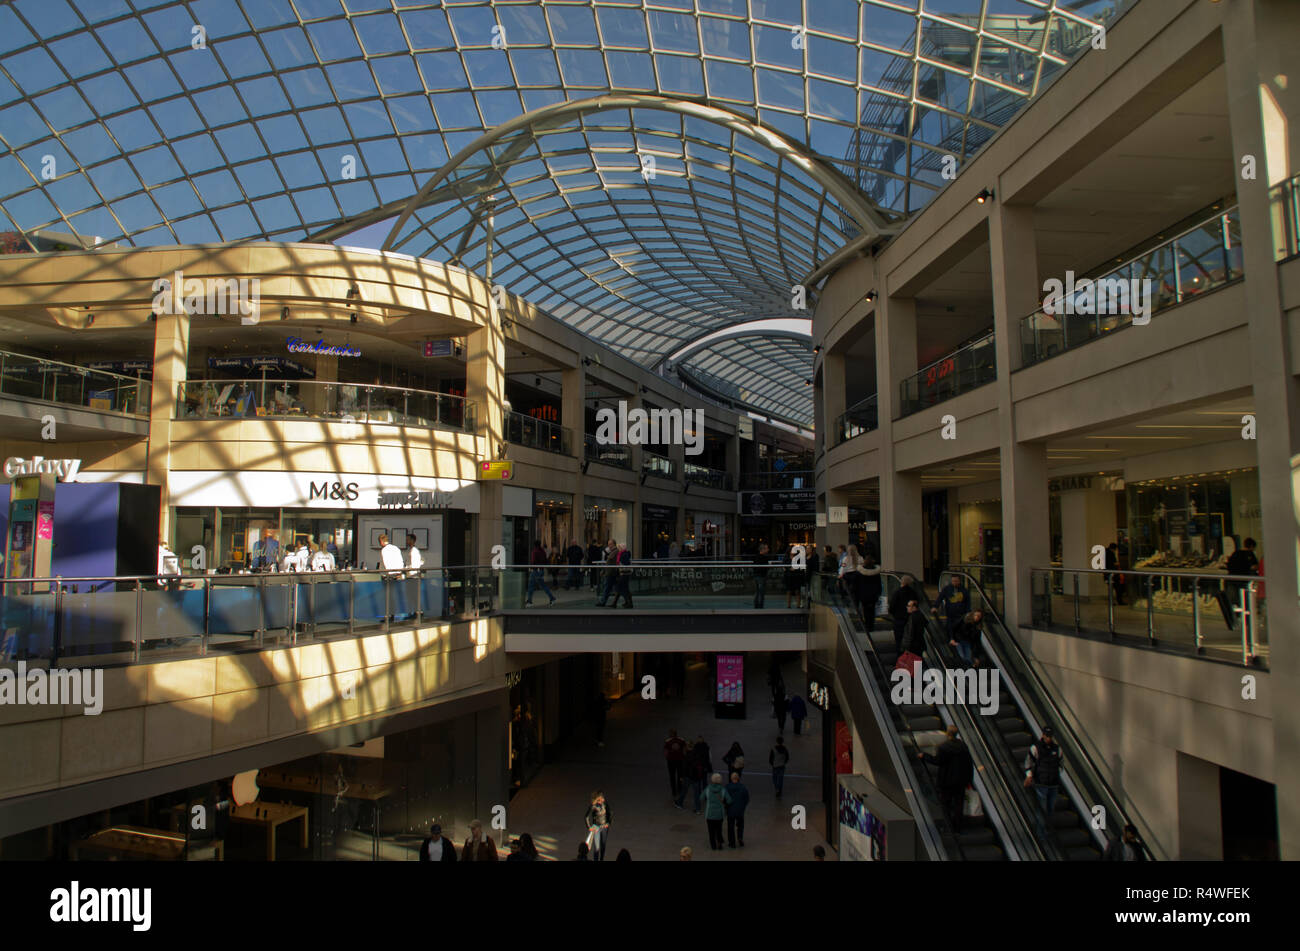 Trinity Leeds Shopping Centre - Stock Image